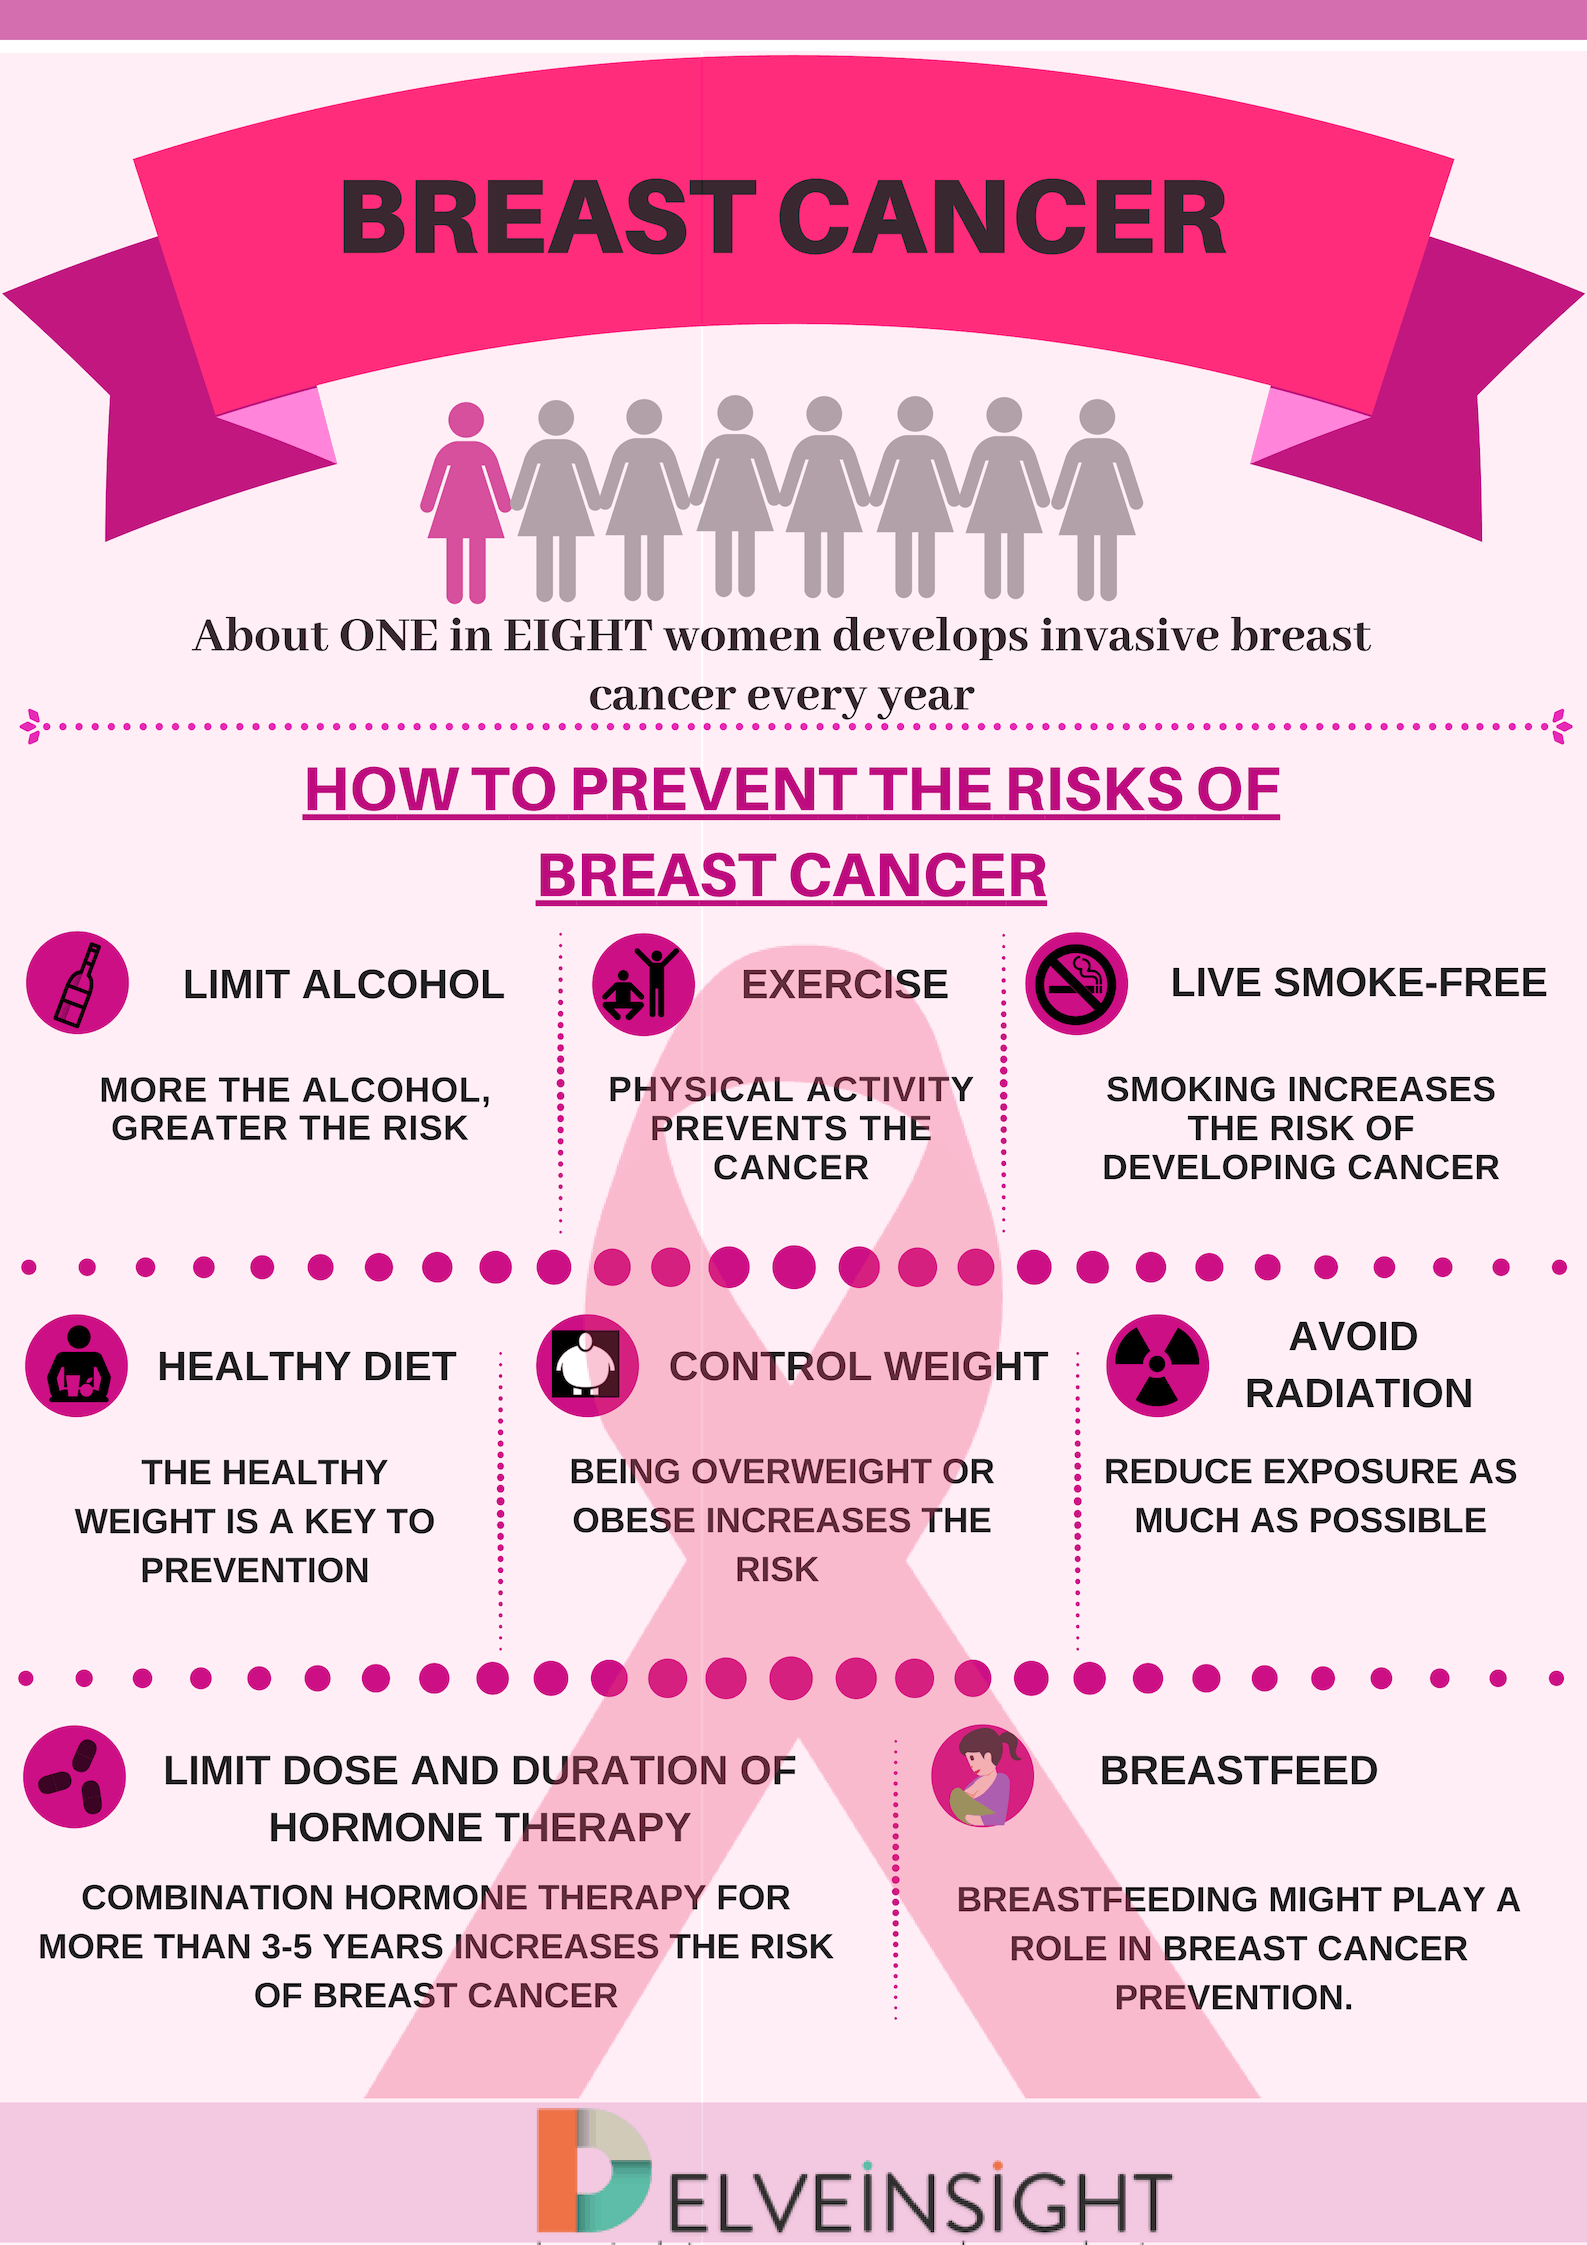 Breast Cancer Precautions